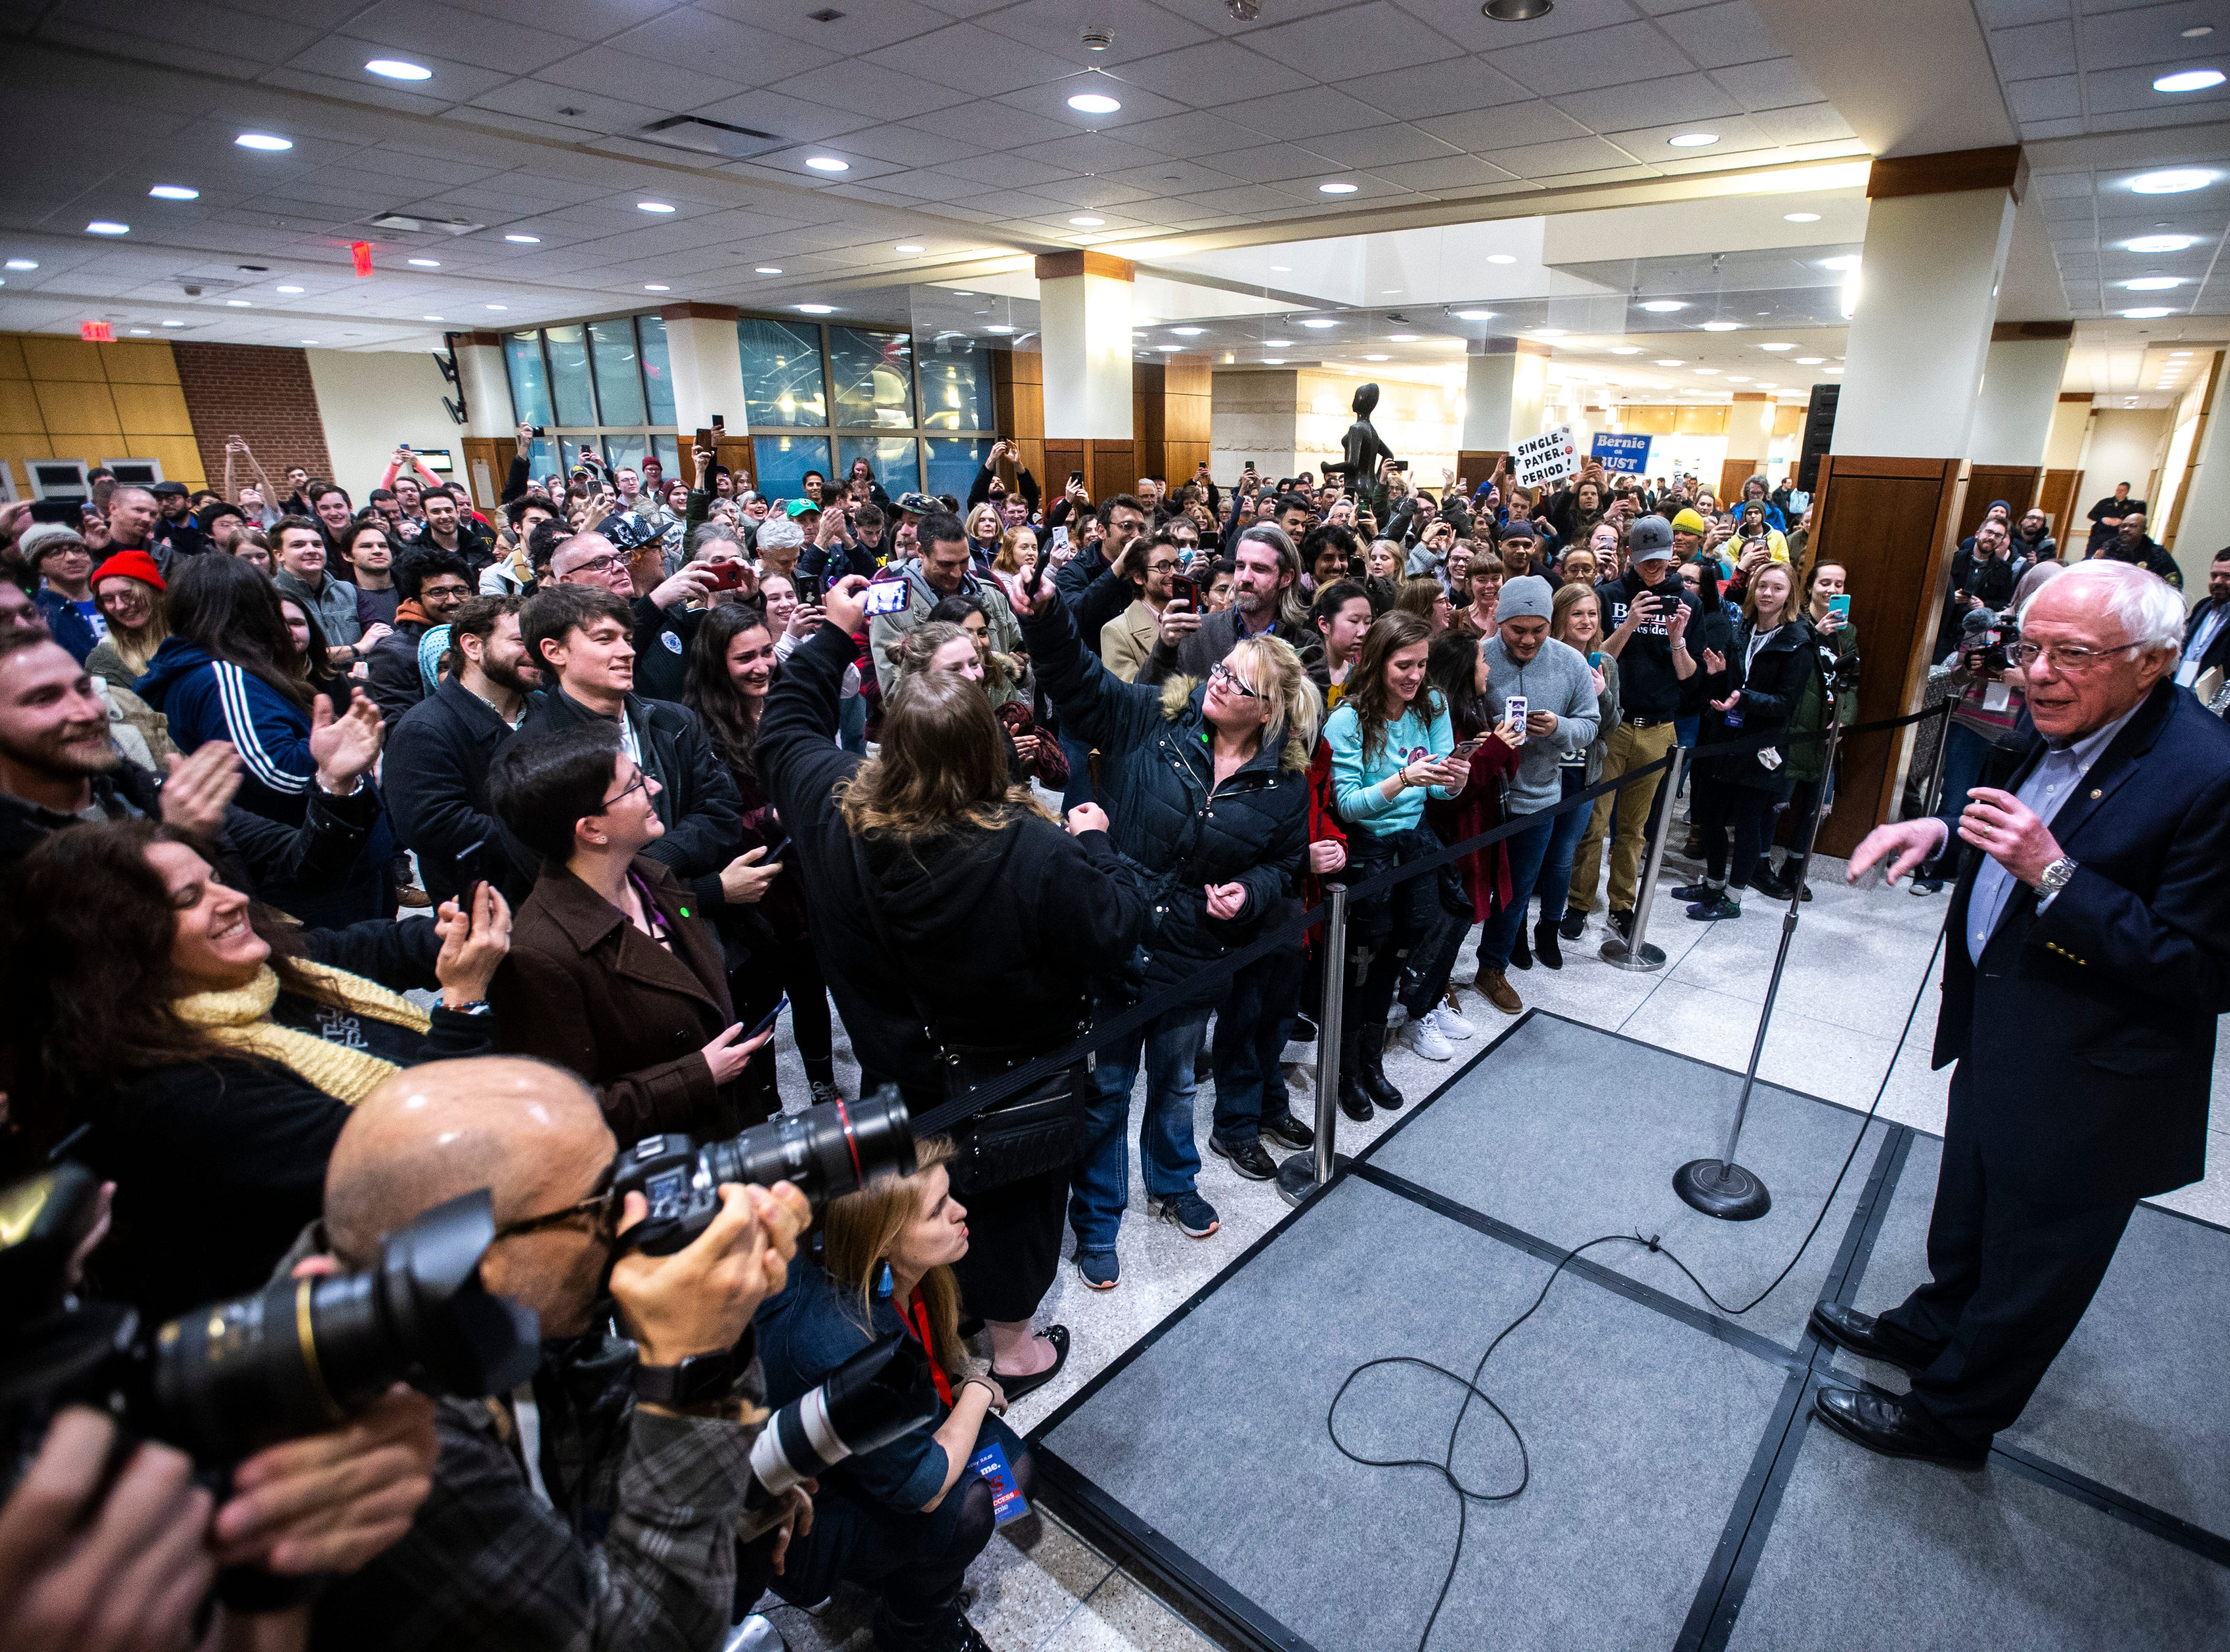 U.S. Sen. Bernie Sanders, I-VT, speaks to the overflow crowd at an event during his first trip to the state ahead of the caucus, Friday, March 8, 2019, at the Iowa Memorial Union on the University of Iowa campus in Iowa City, Iowa. More than 400 people were in the overflow crowd.